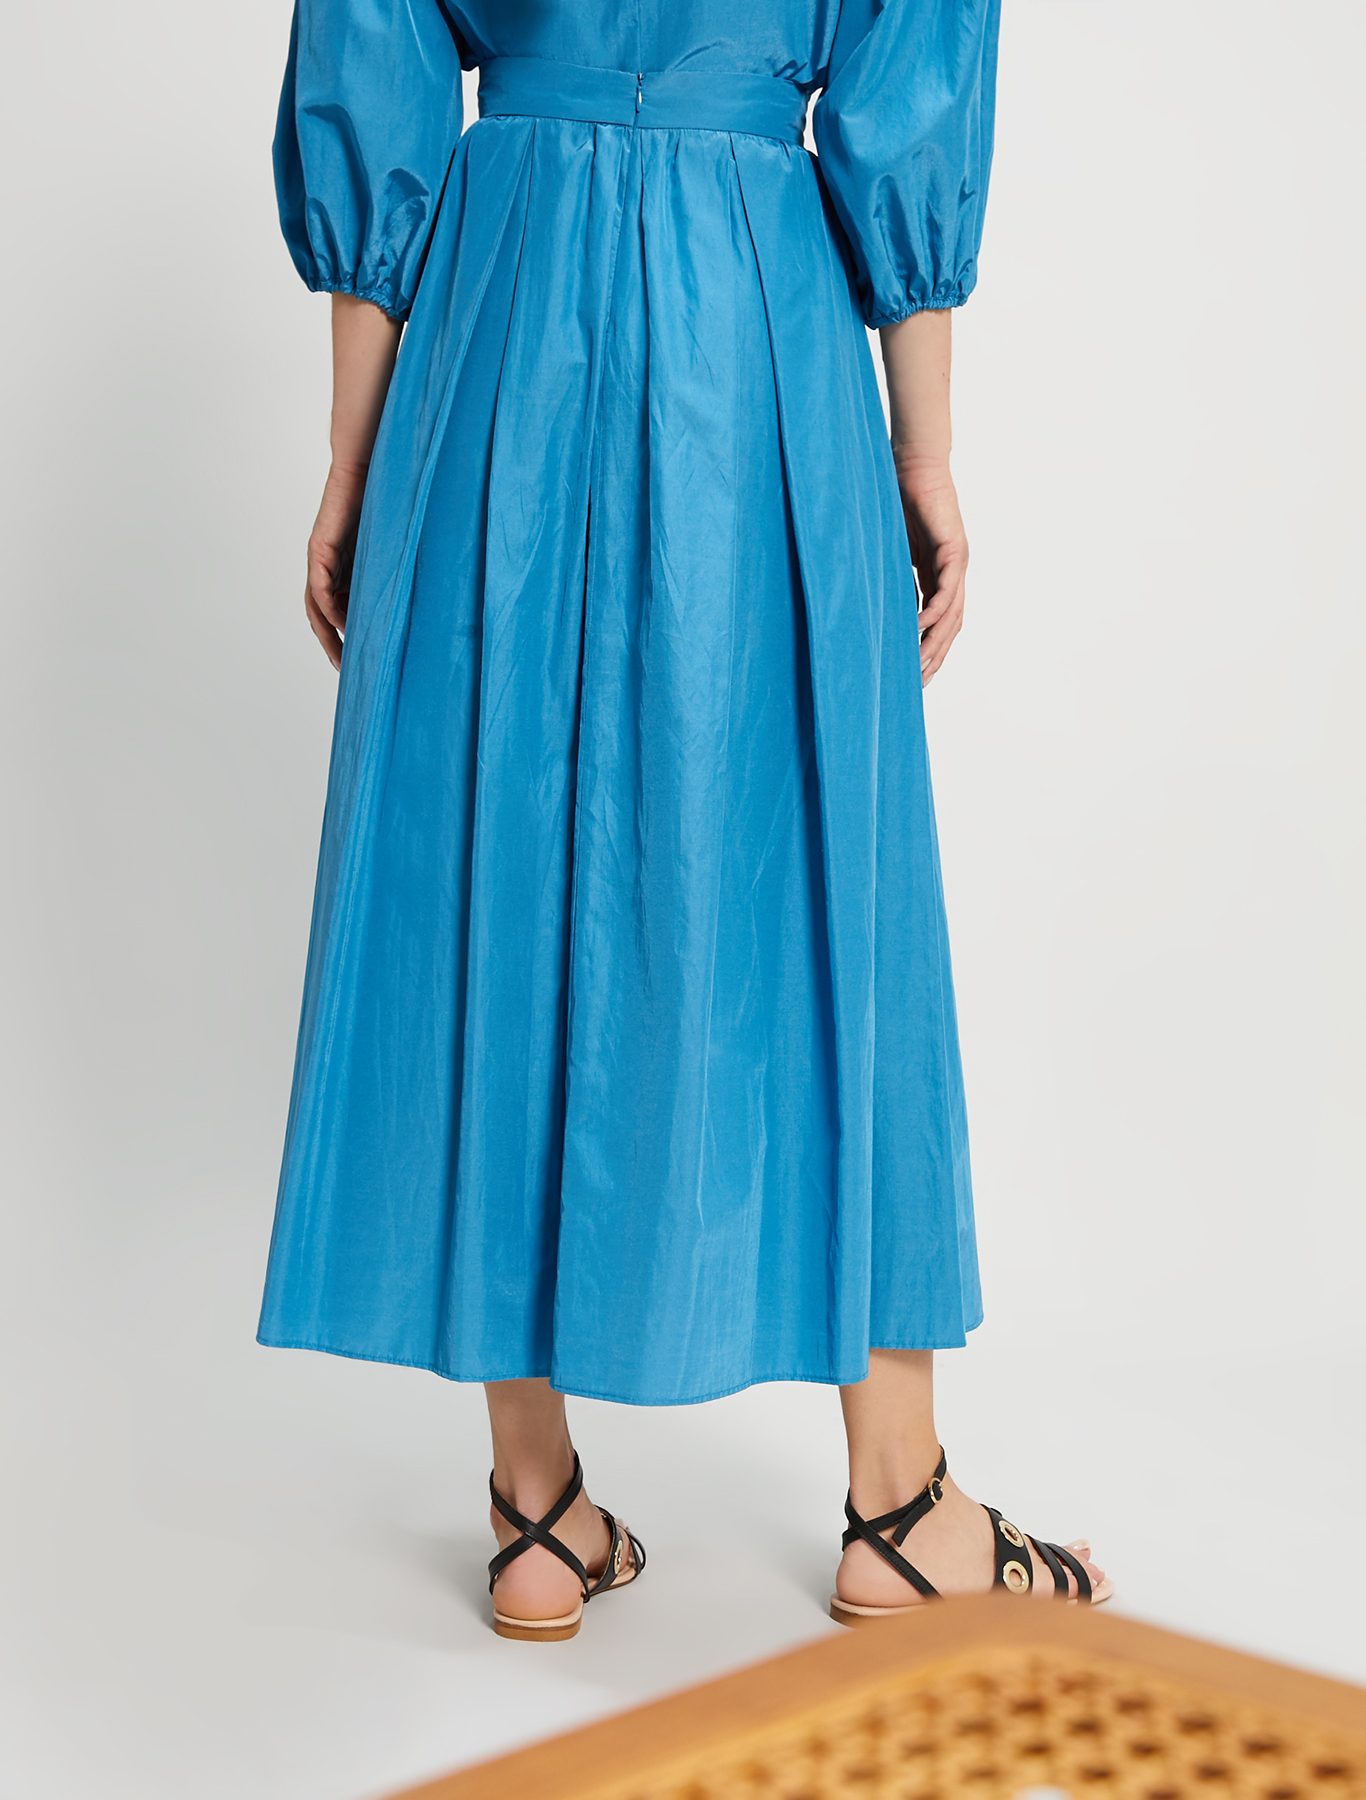 Pleated taffeta skirt - turquoise - pennyblack